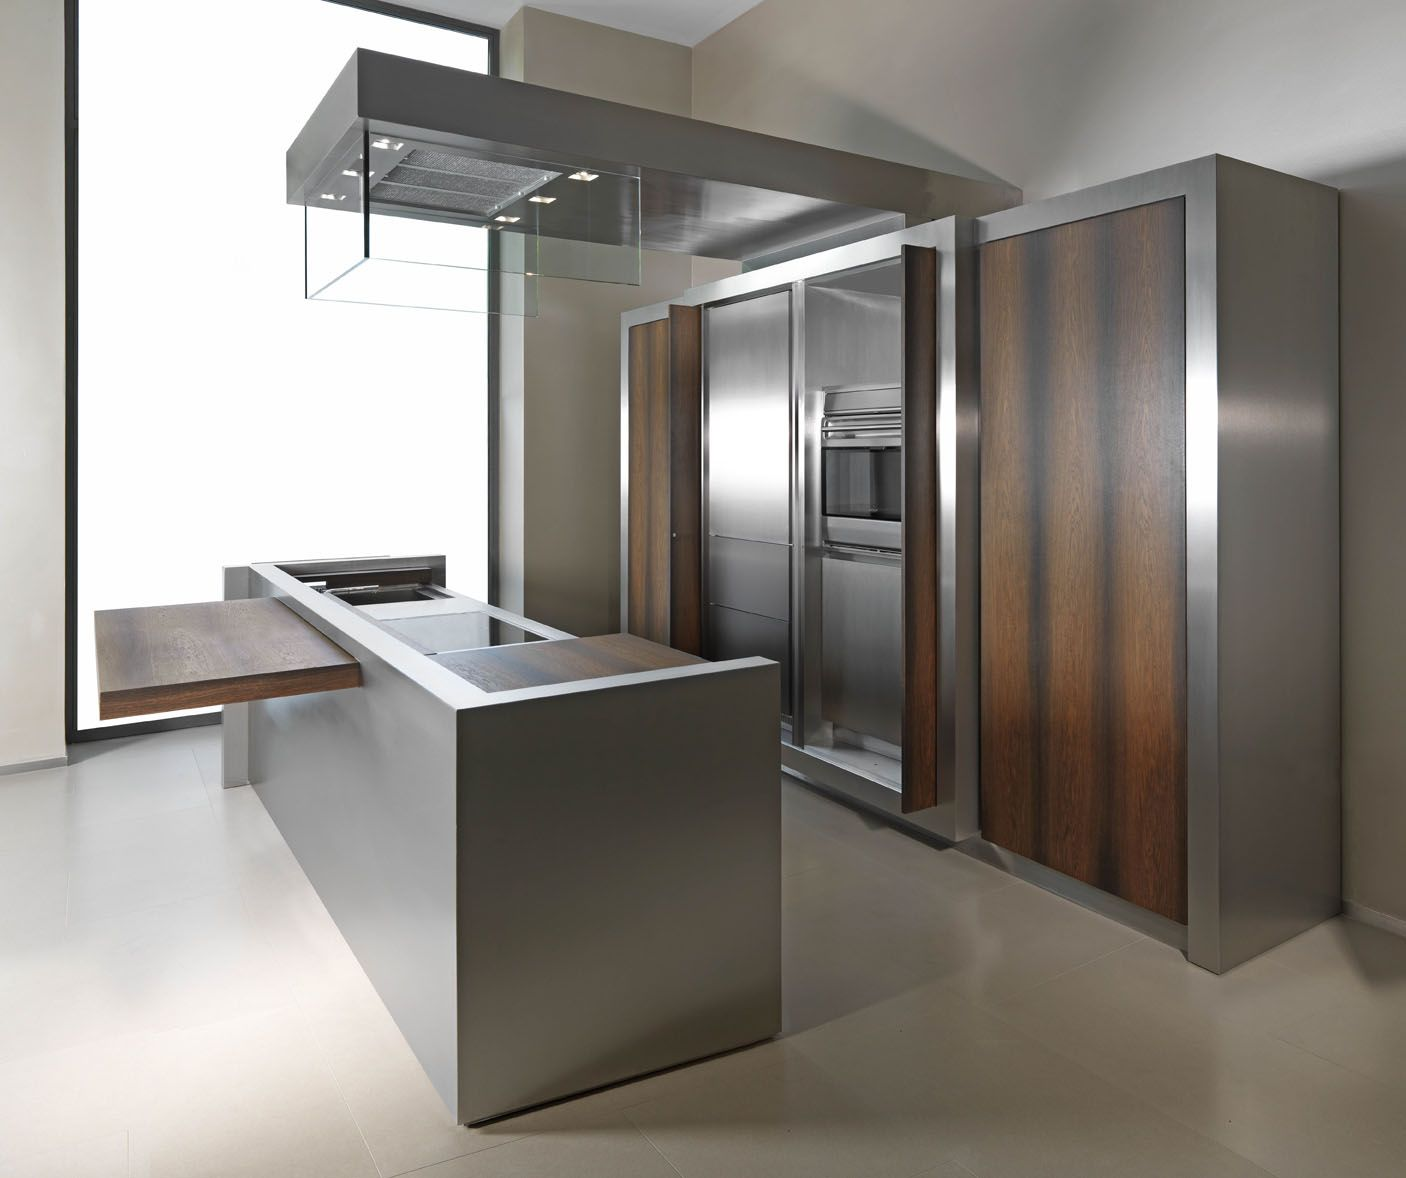 Metal Cabinets Kitchen Single Basin Sink 30 43 Ideas Style Photos Remodel